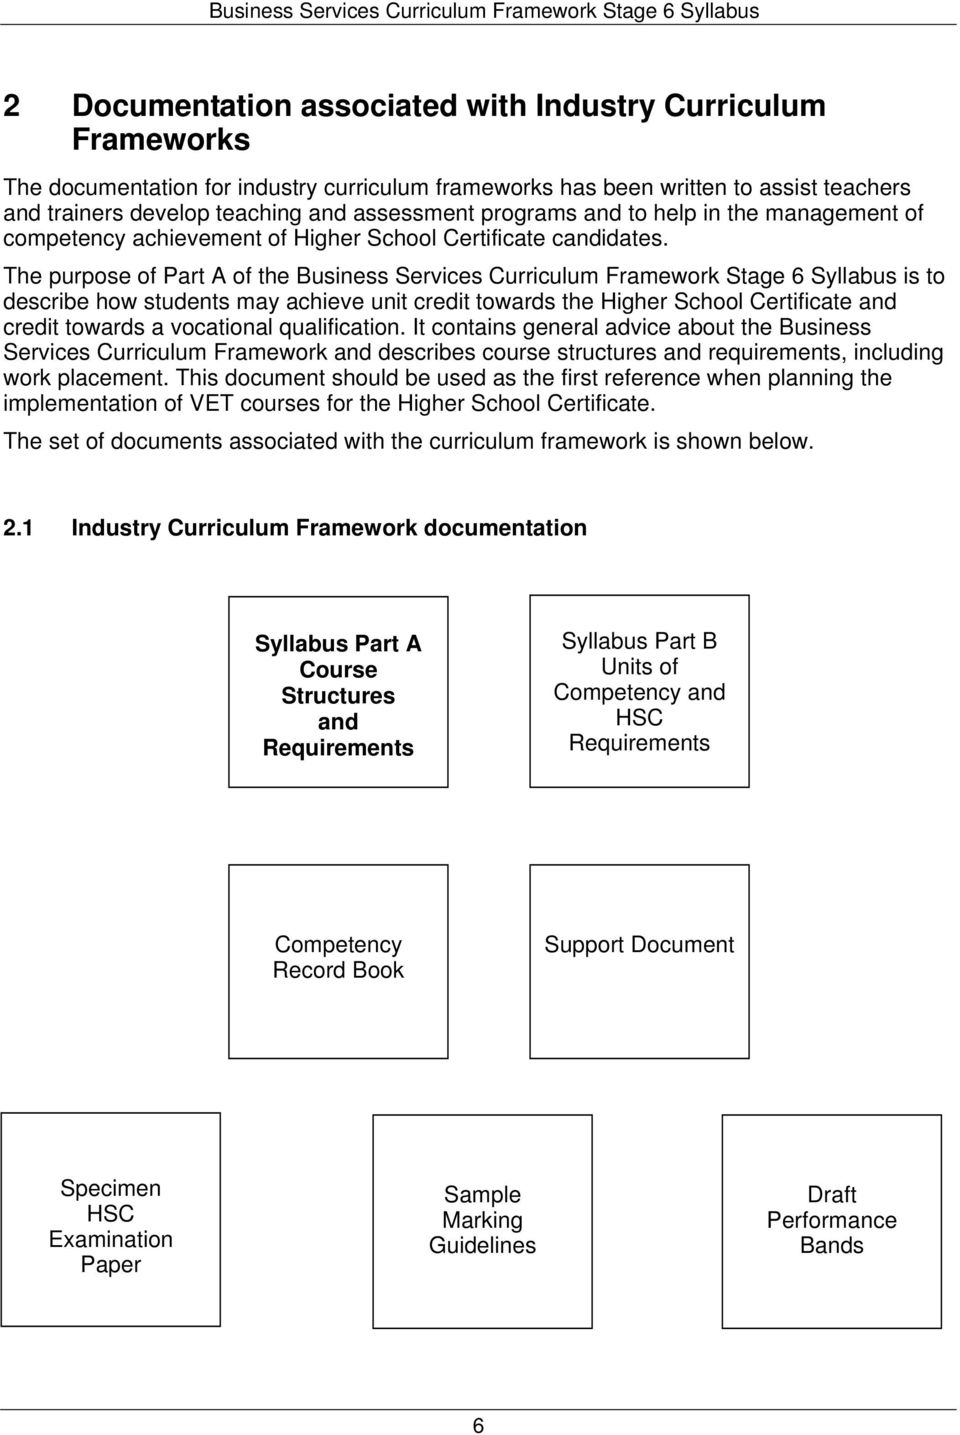 The purpose of Part A of the Business Services Curriculum Framework Stage 6 Syllabus is to describe how students may achieve unit credit towards the Higher School Certificate and credit towards a